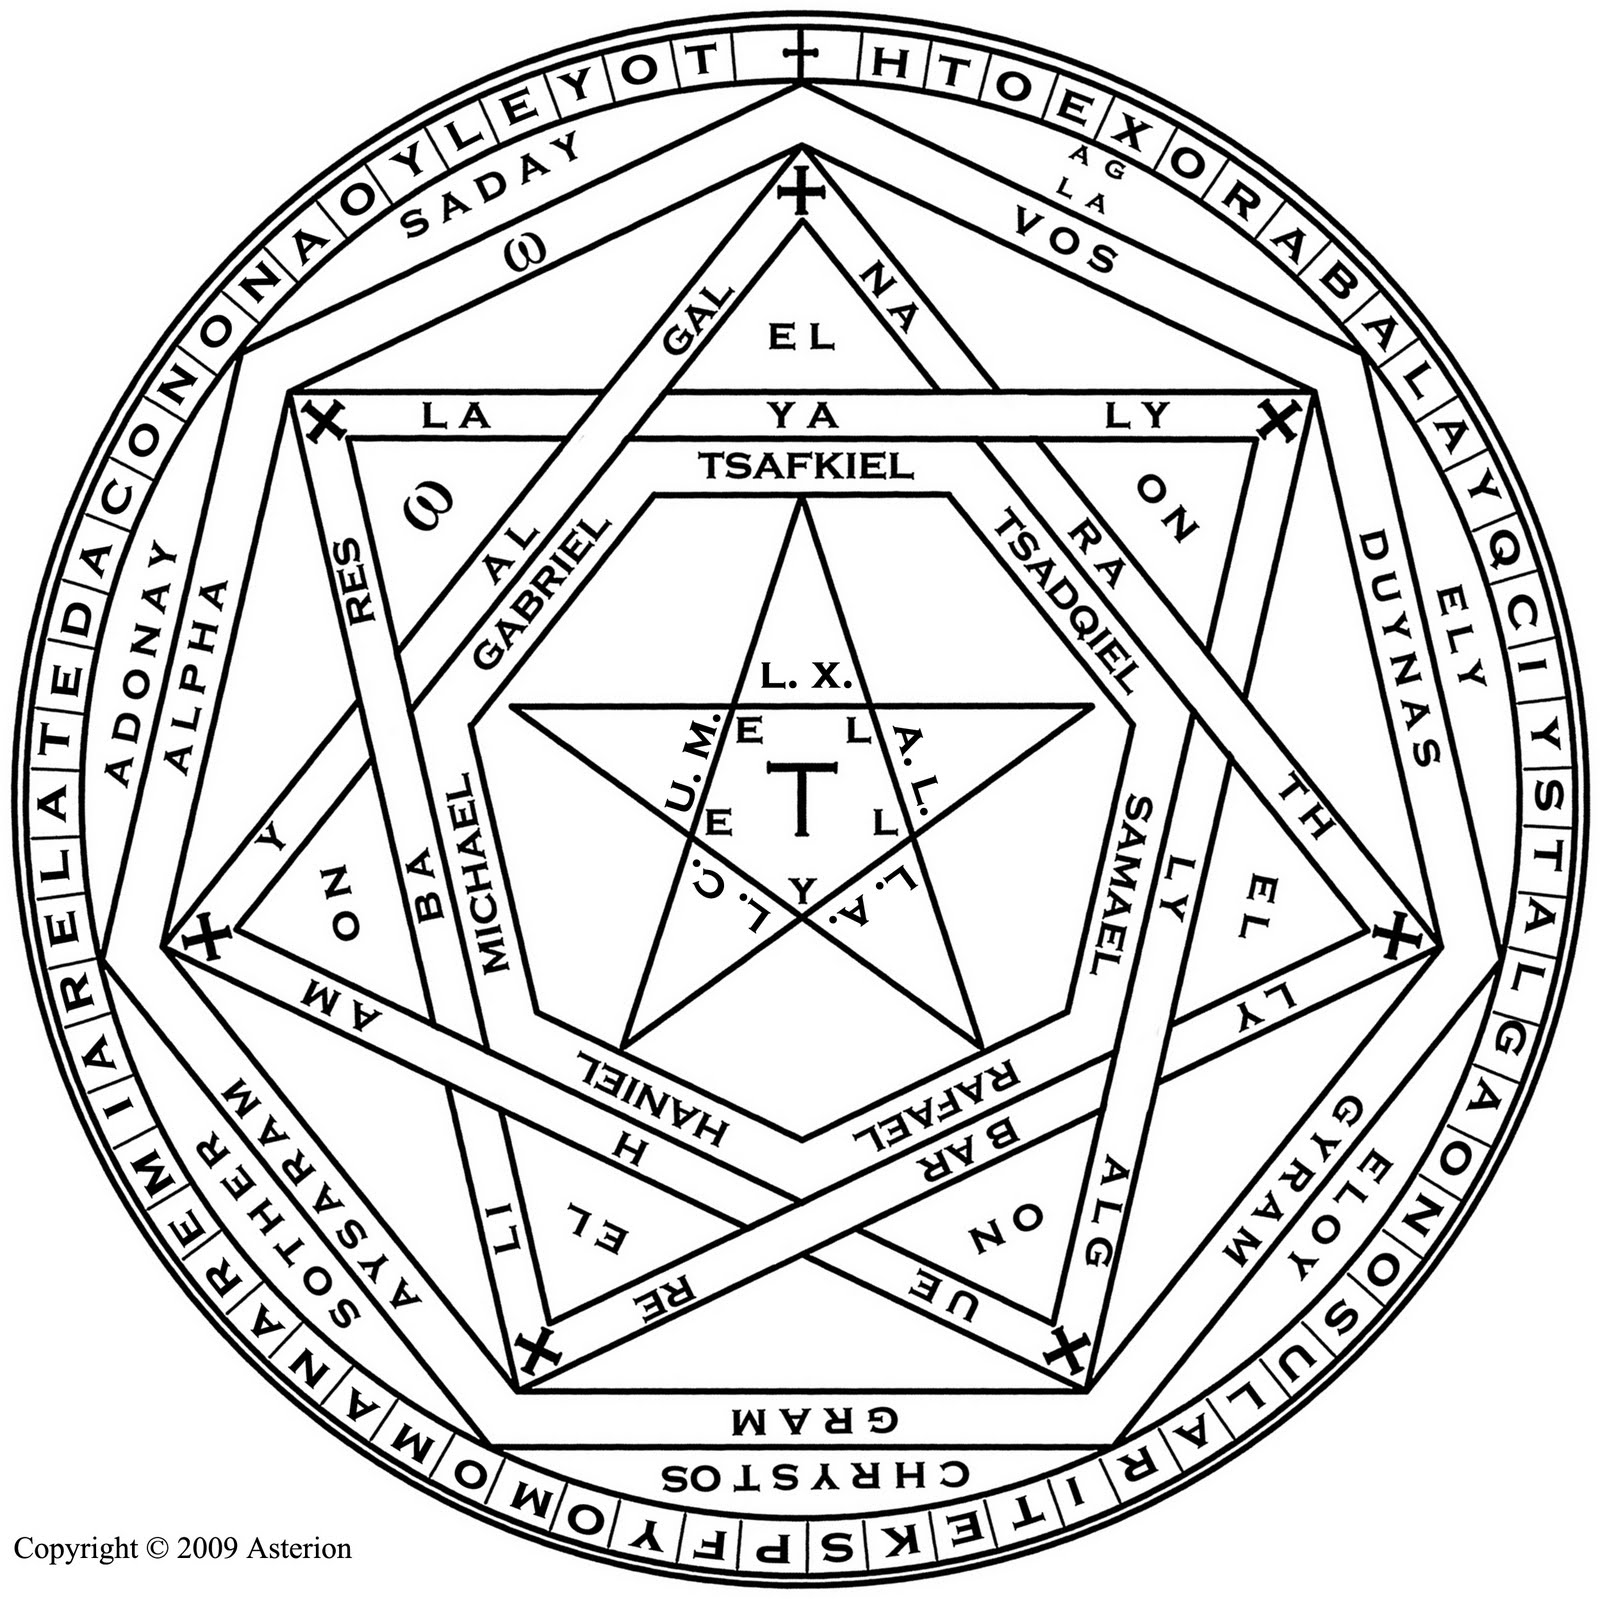 Asterion S Occult Art Seal Of God Of Truth Sigillum Dei